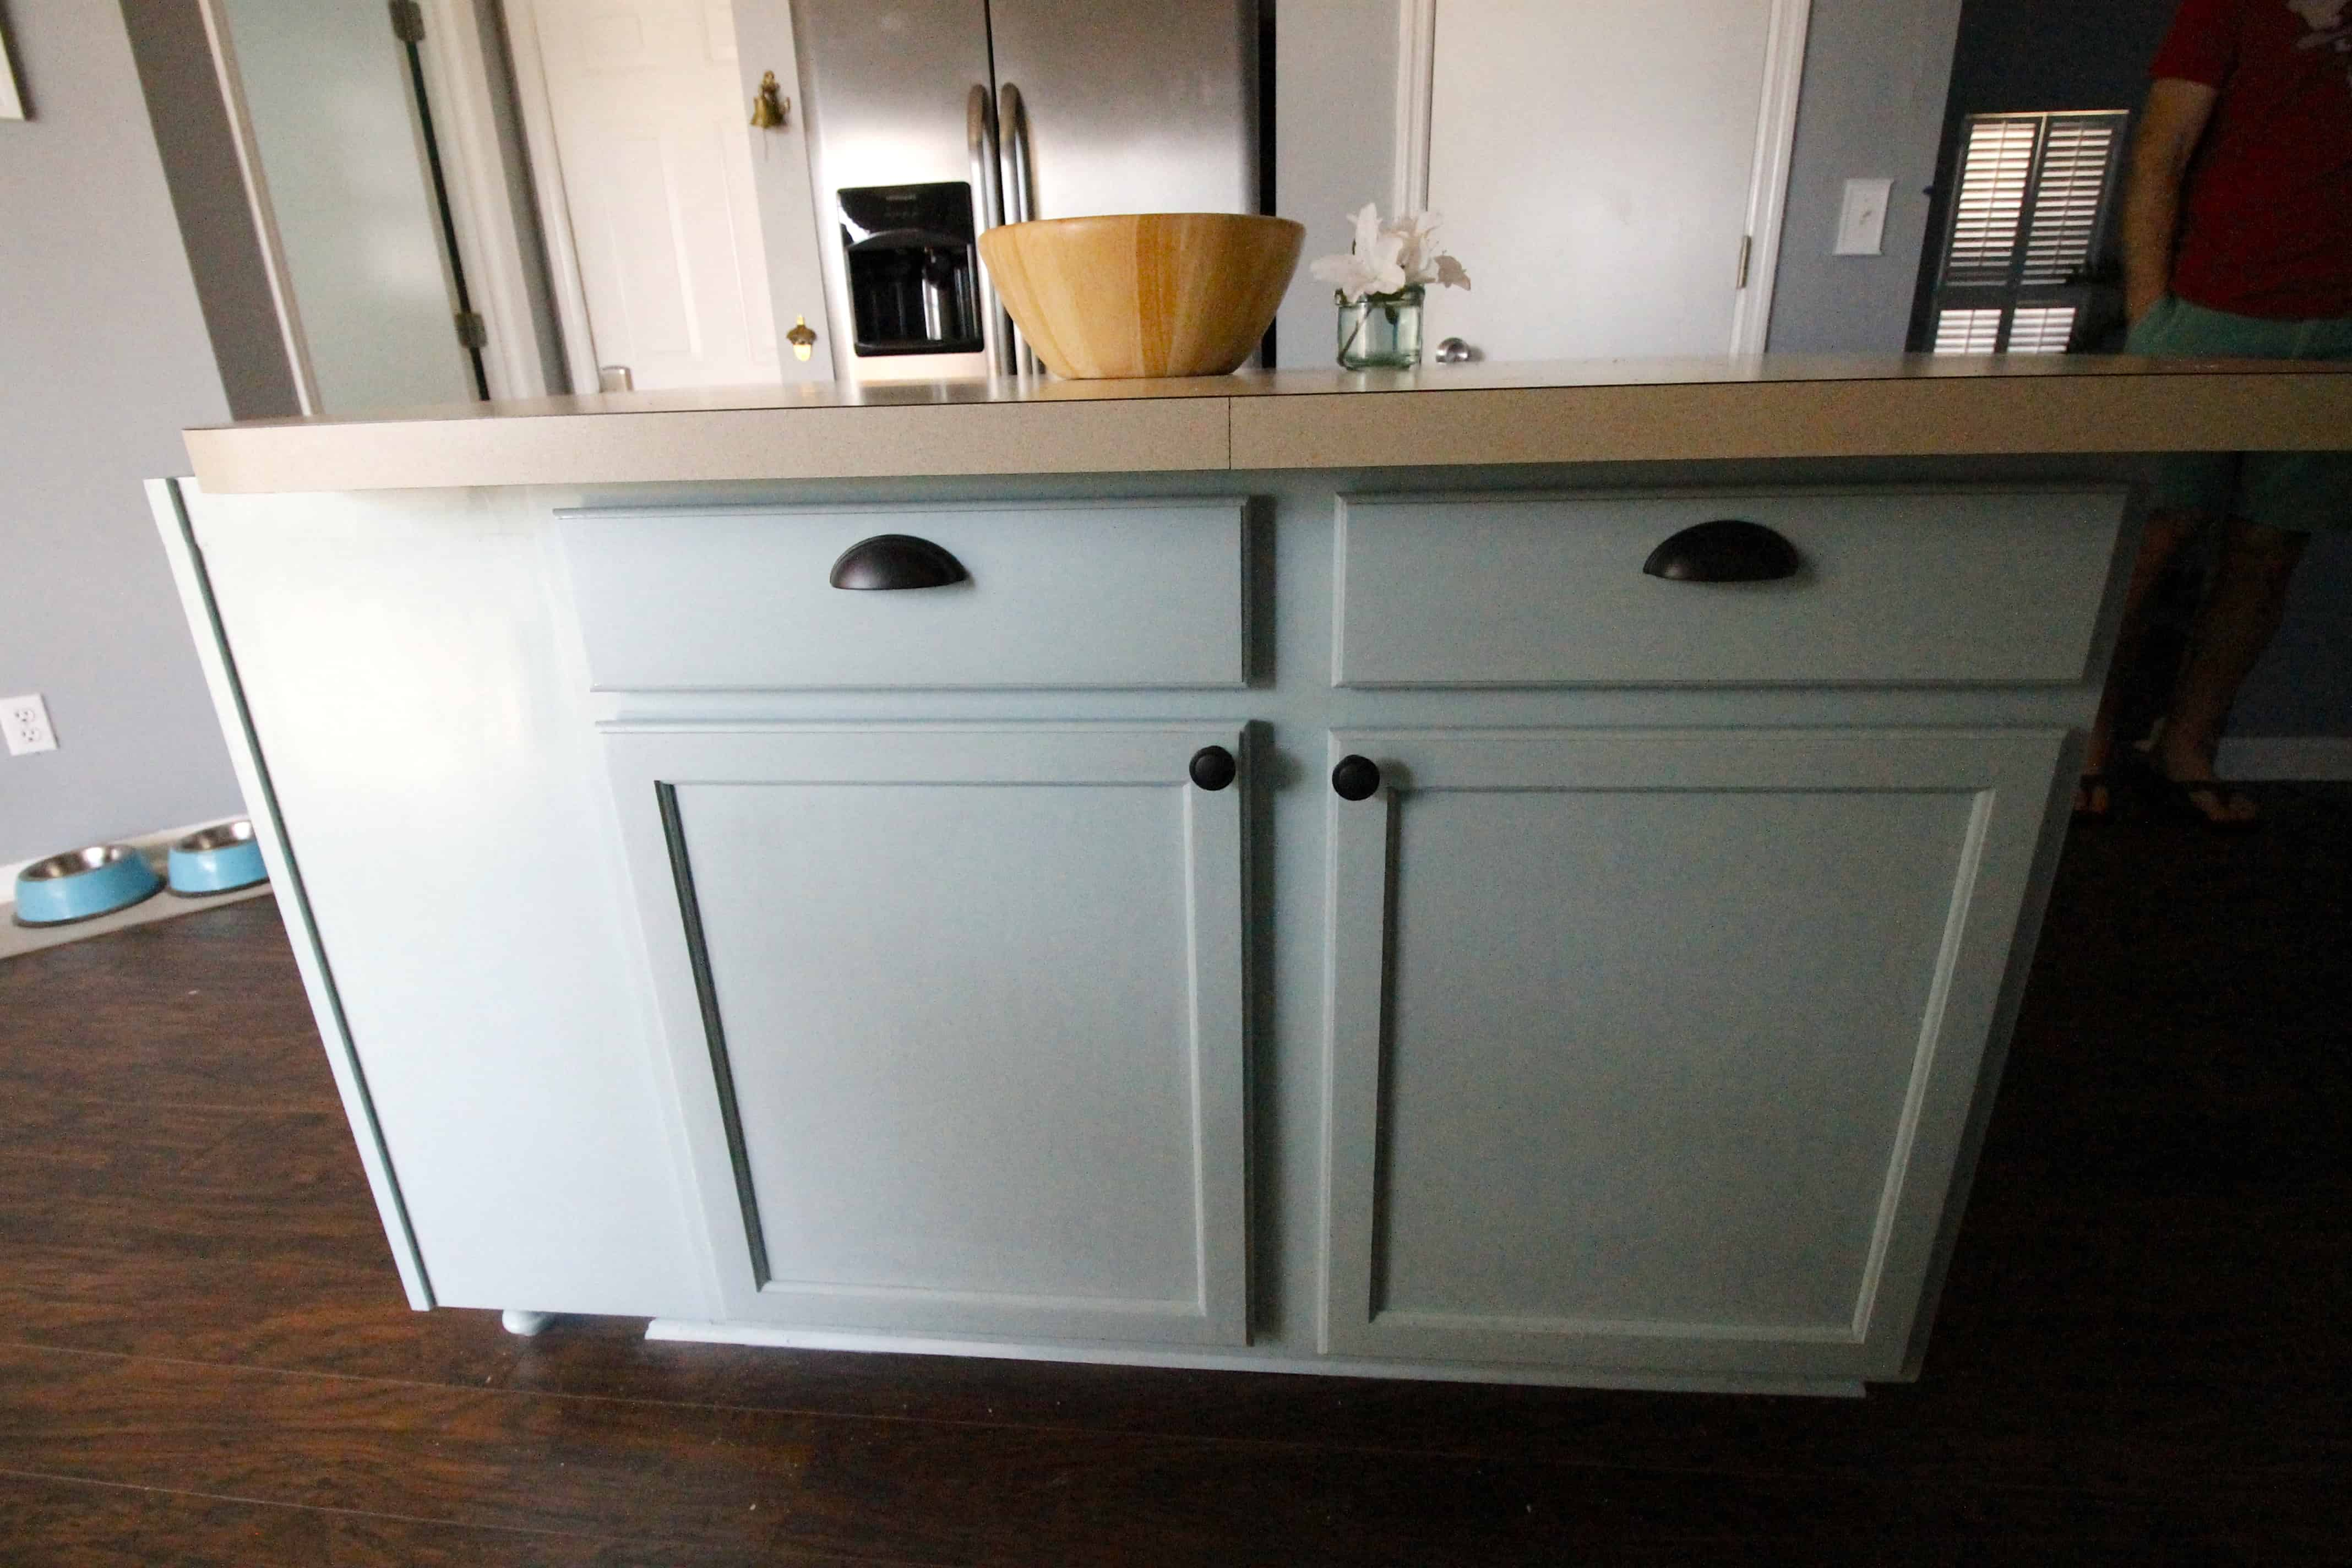 What We Learned Painting Our Kitchen Cabinets • Charleston Crafted